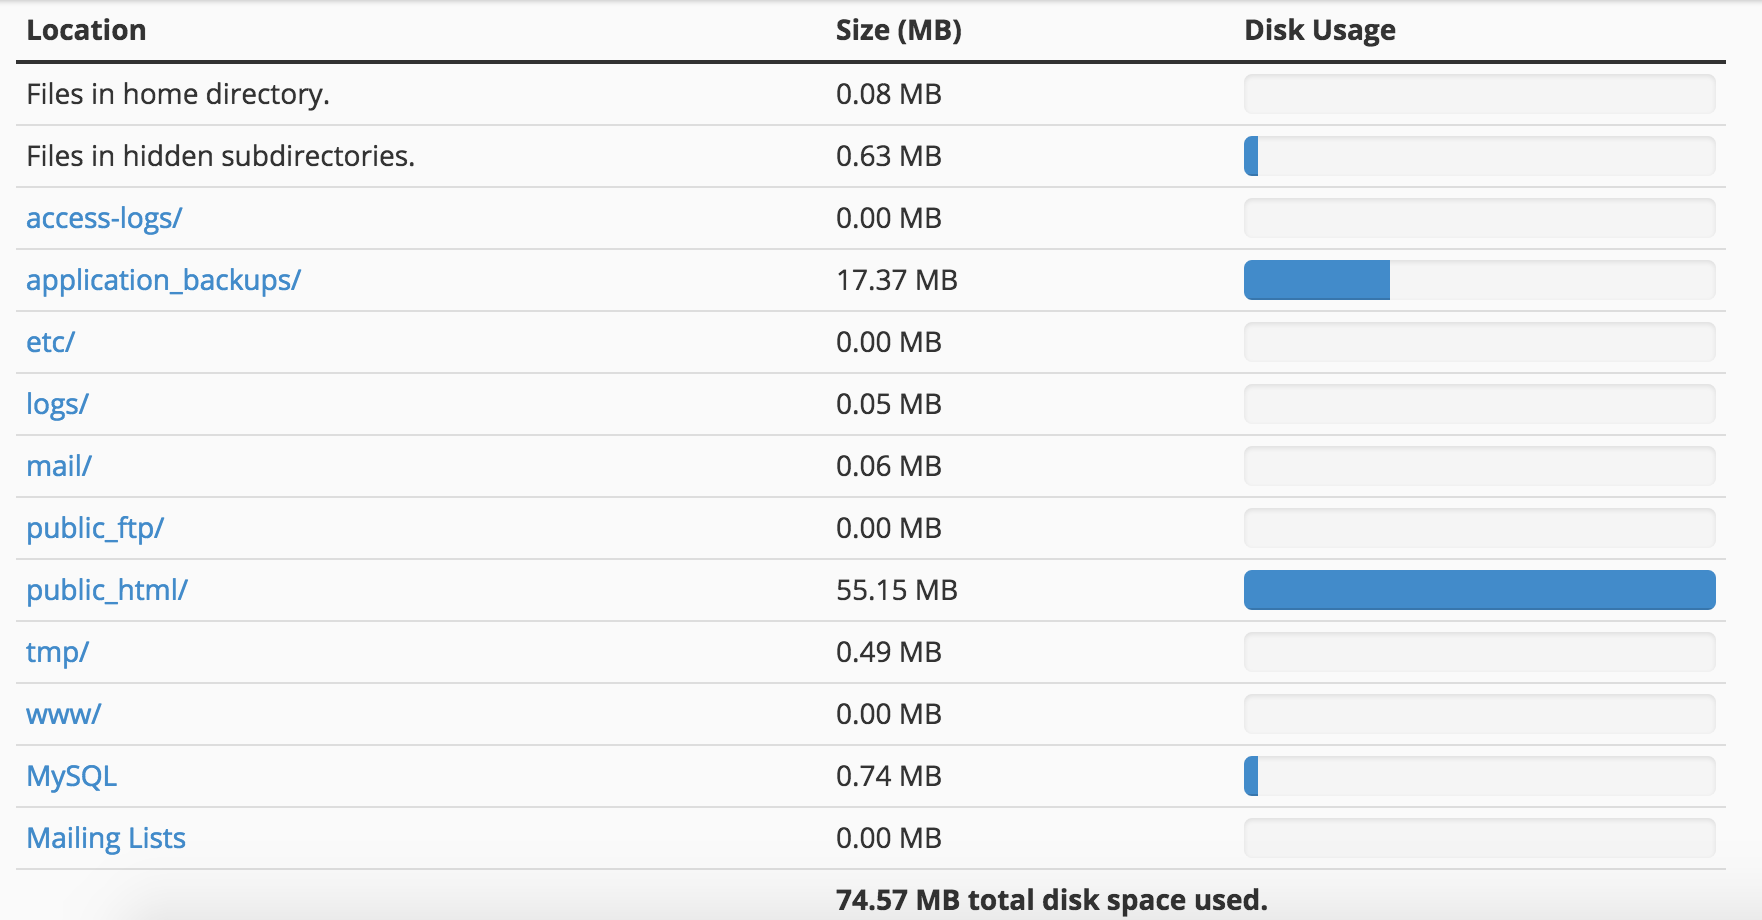 Disk Usage Detail View